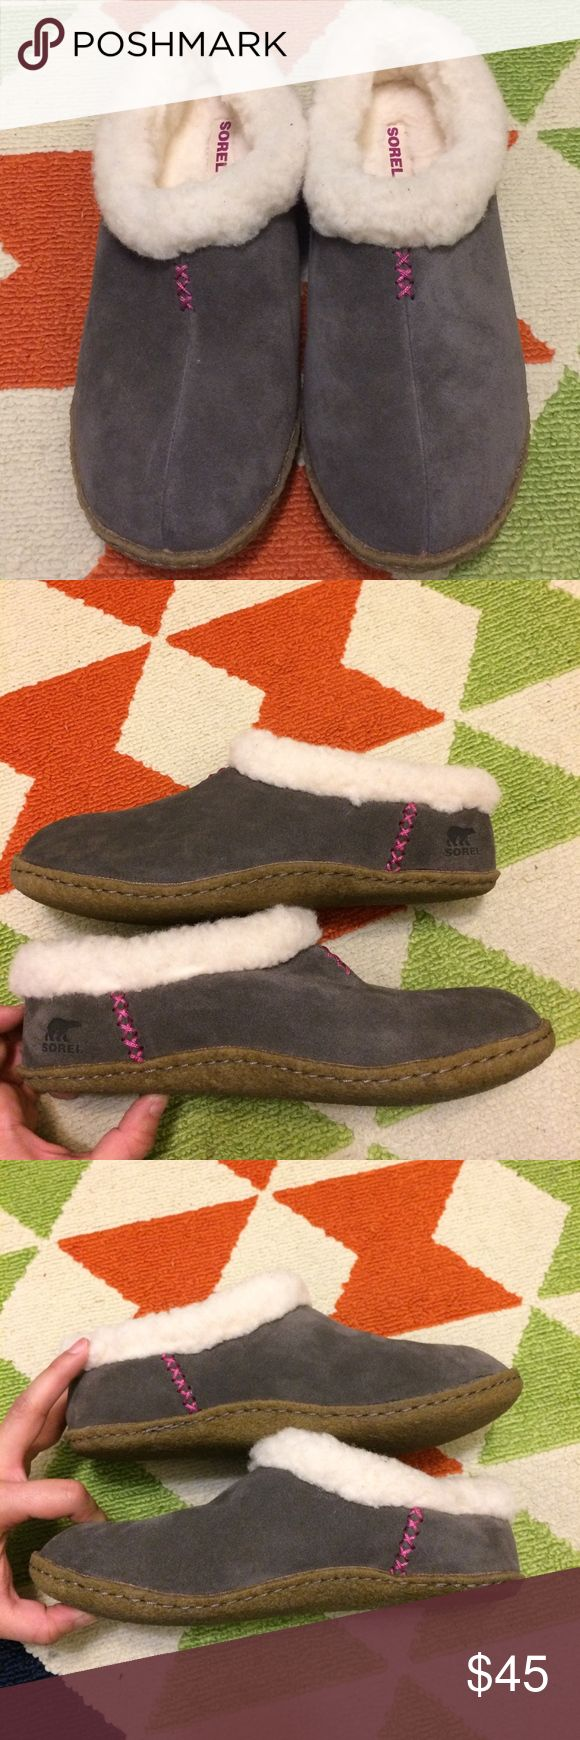 NWOT Sorel Slippers New without Tags! Gray with pink stitching, sticky sole and thick fur for warmth. Sorel Shoes Slippers